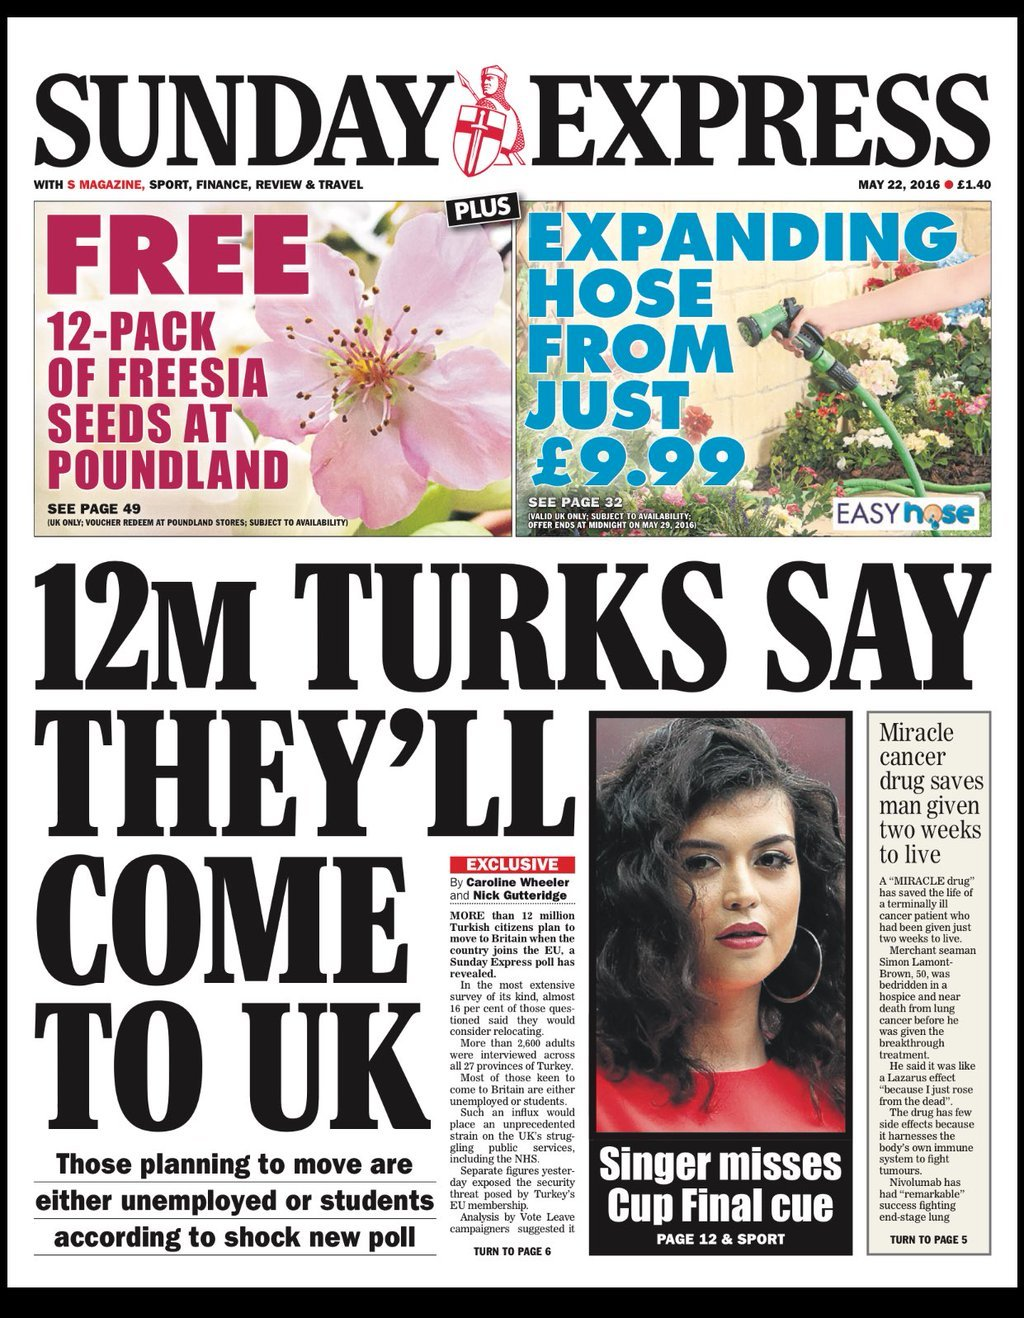 @hendopolis: SUNDAY EXPRESS: 12m Turks say they'll come to UK #tomorrowspaperstoday #bbcpapers https://t.co/ArvI3hlgc2